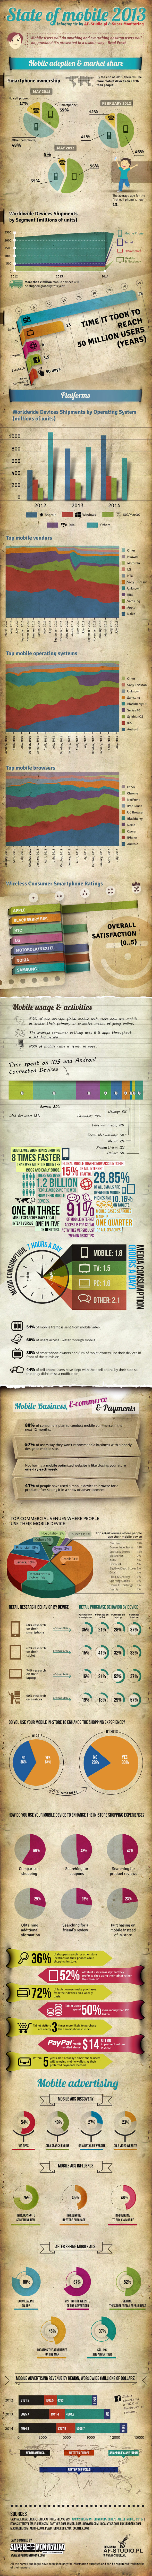 Infographic-2013-Mobile-Growth-Statistics-Large